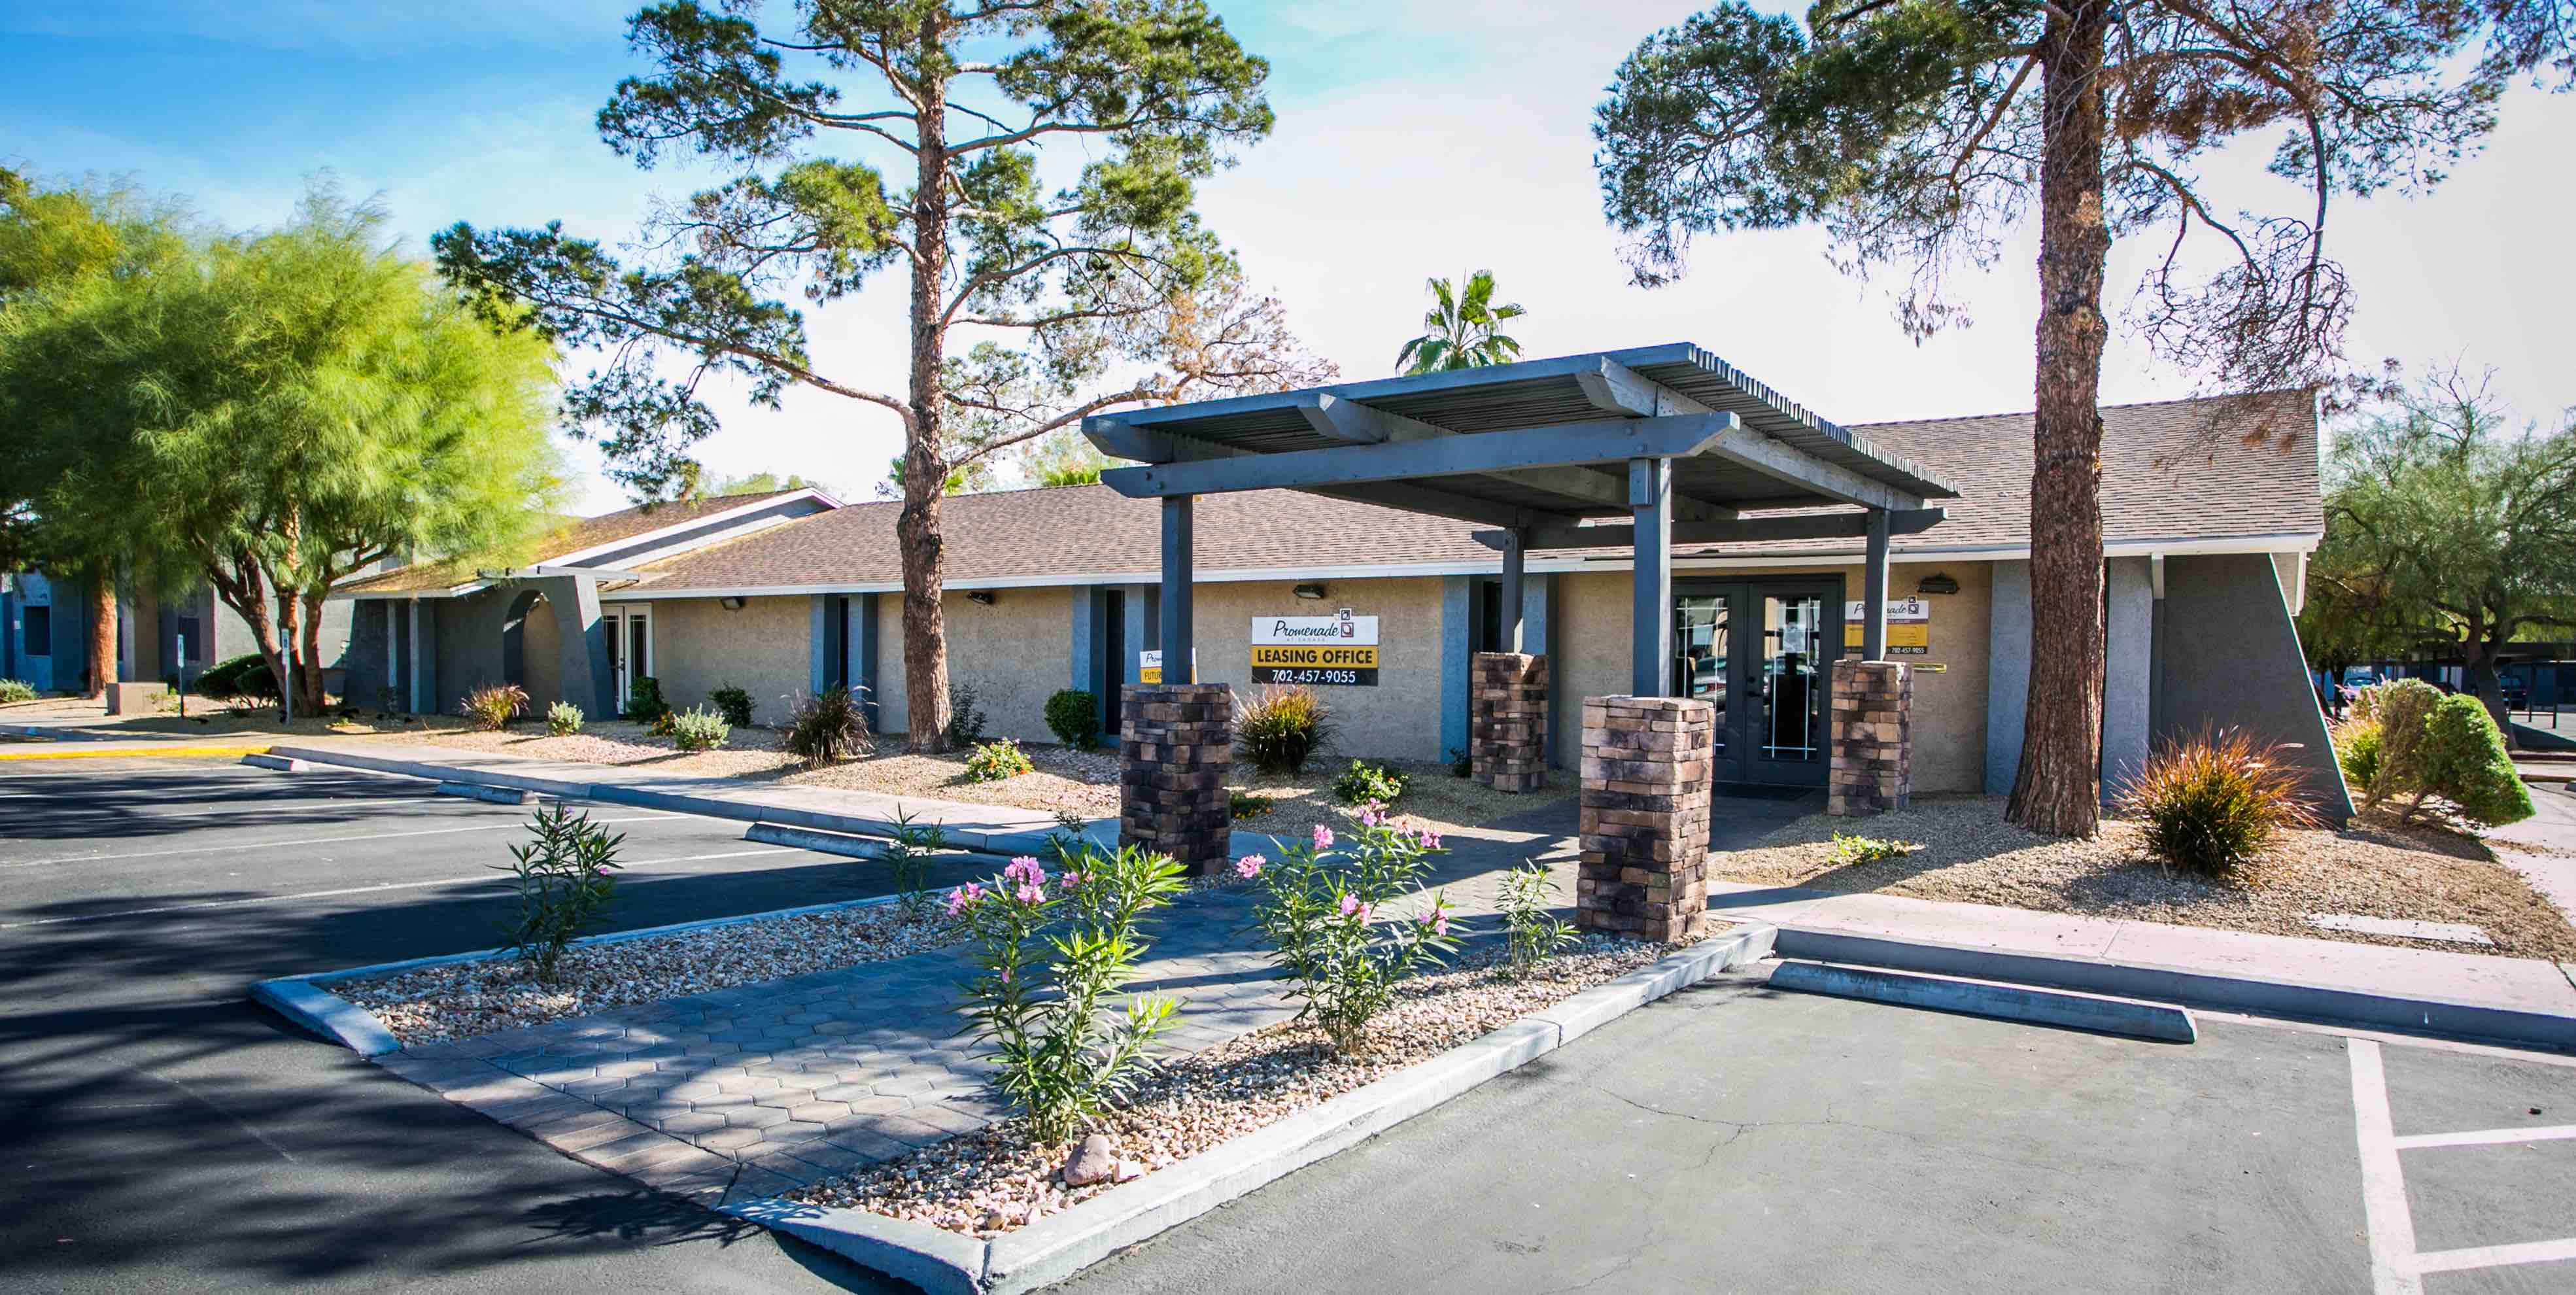 Tower capital 16 buys las vegas apartment complex for 32 - Apartment complexes san diego ...